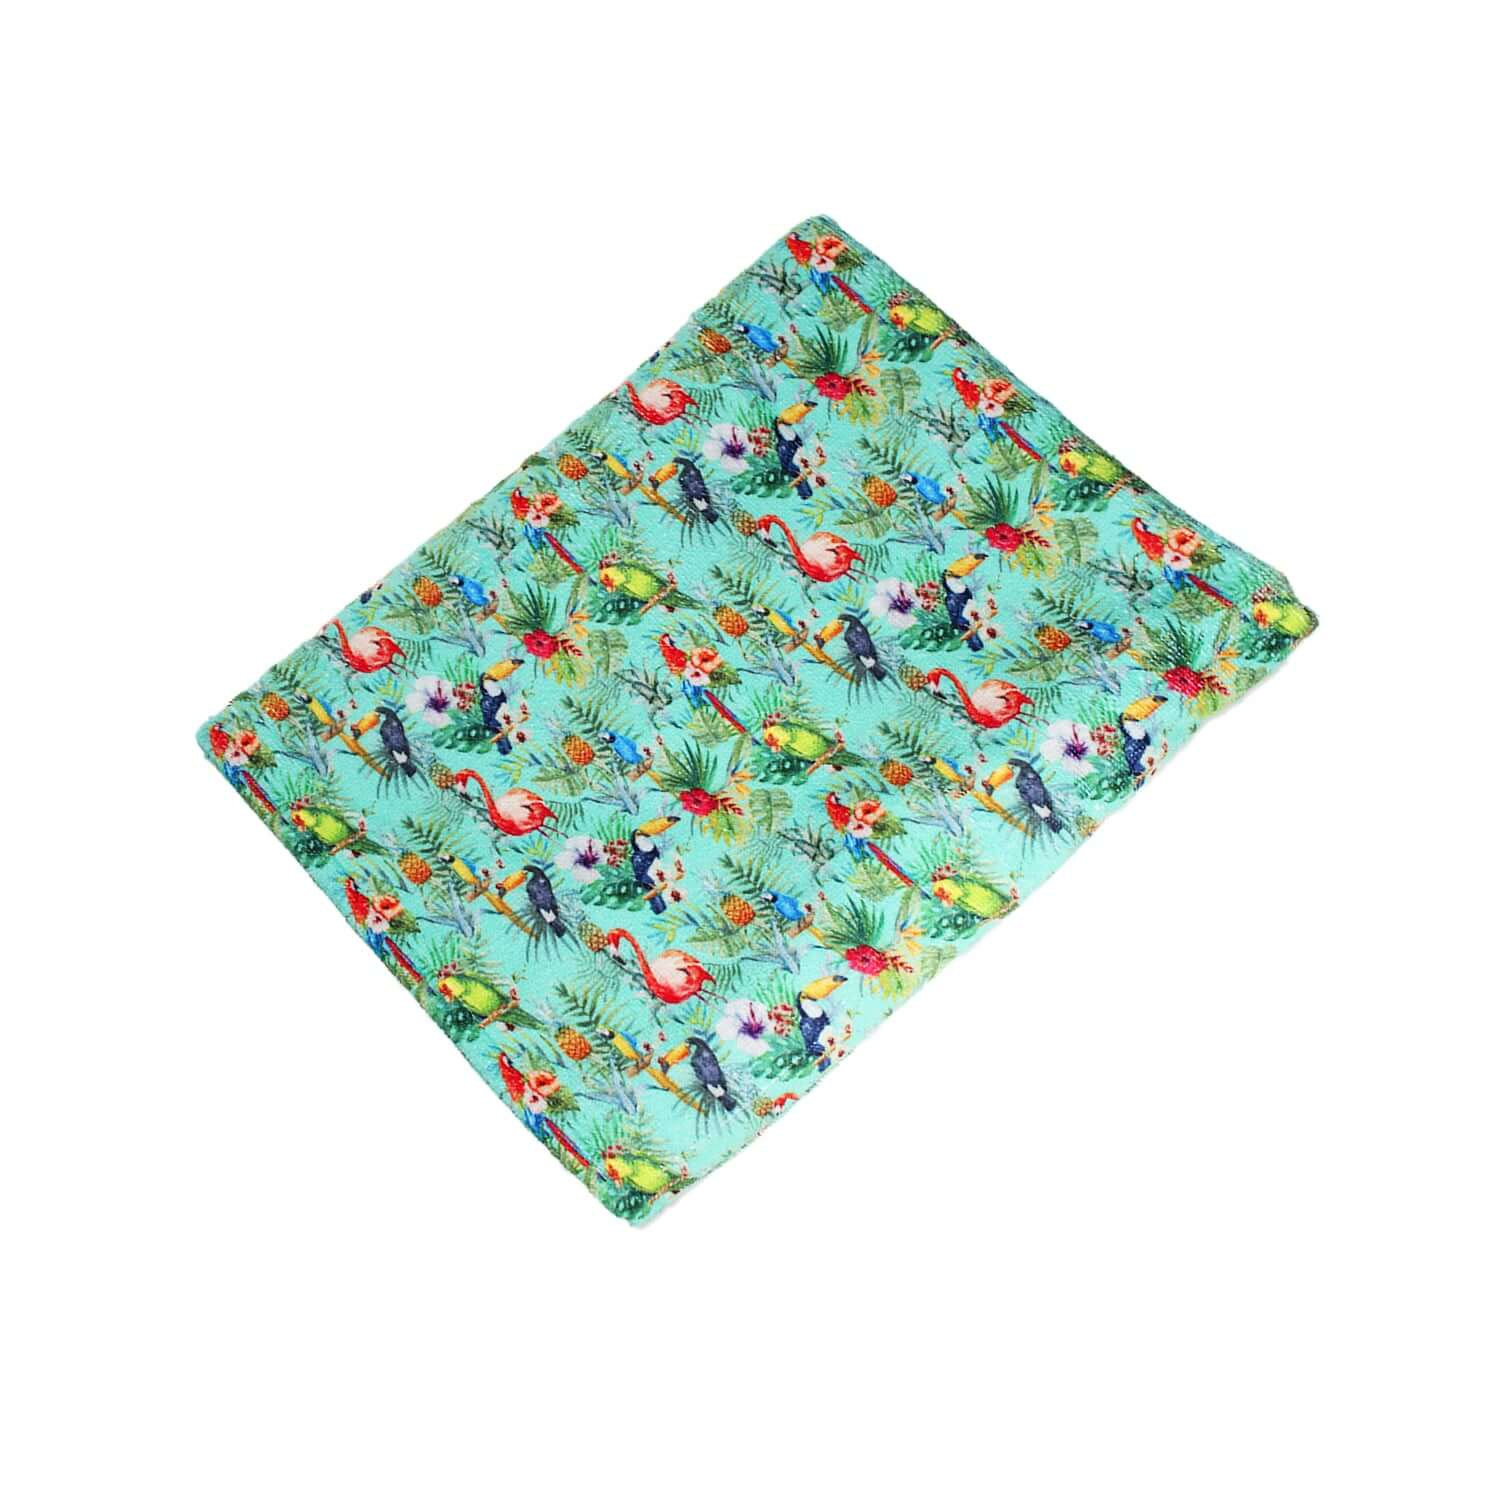 PRINTED TROPICAL TOWEL - Clorofila Sea Wear